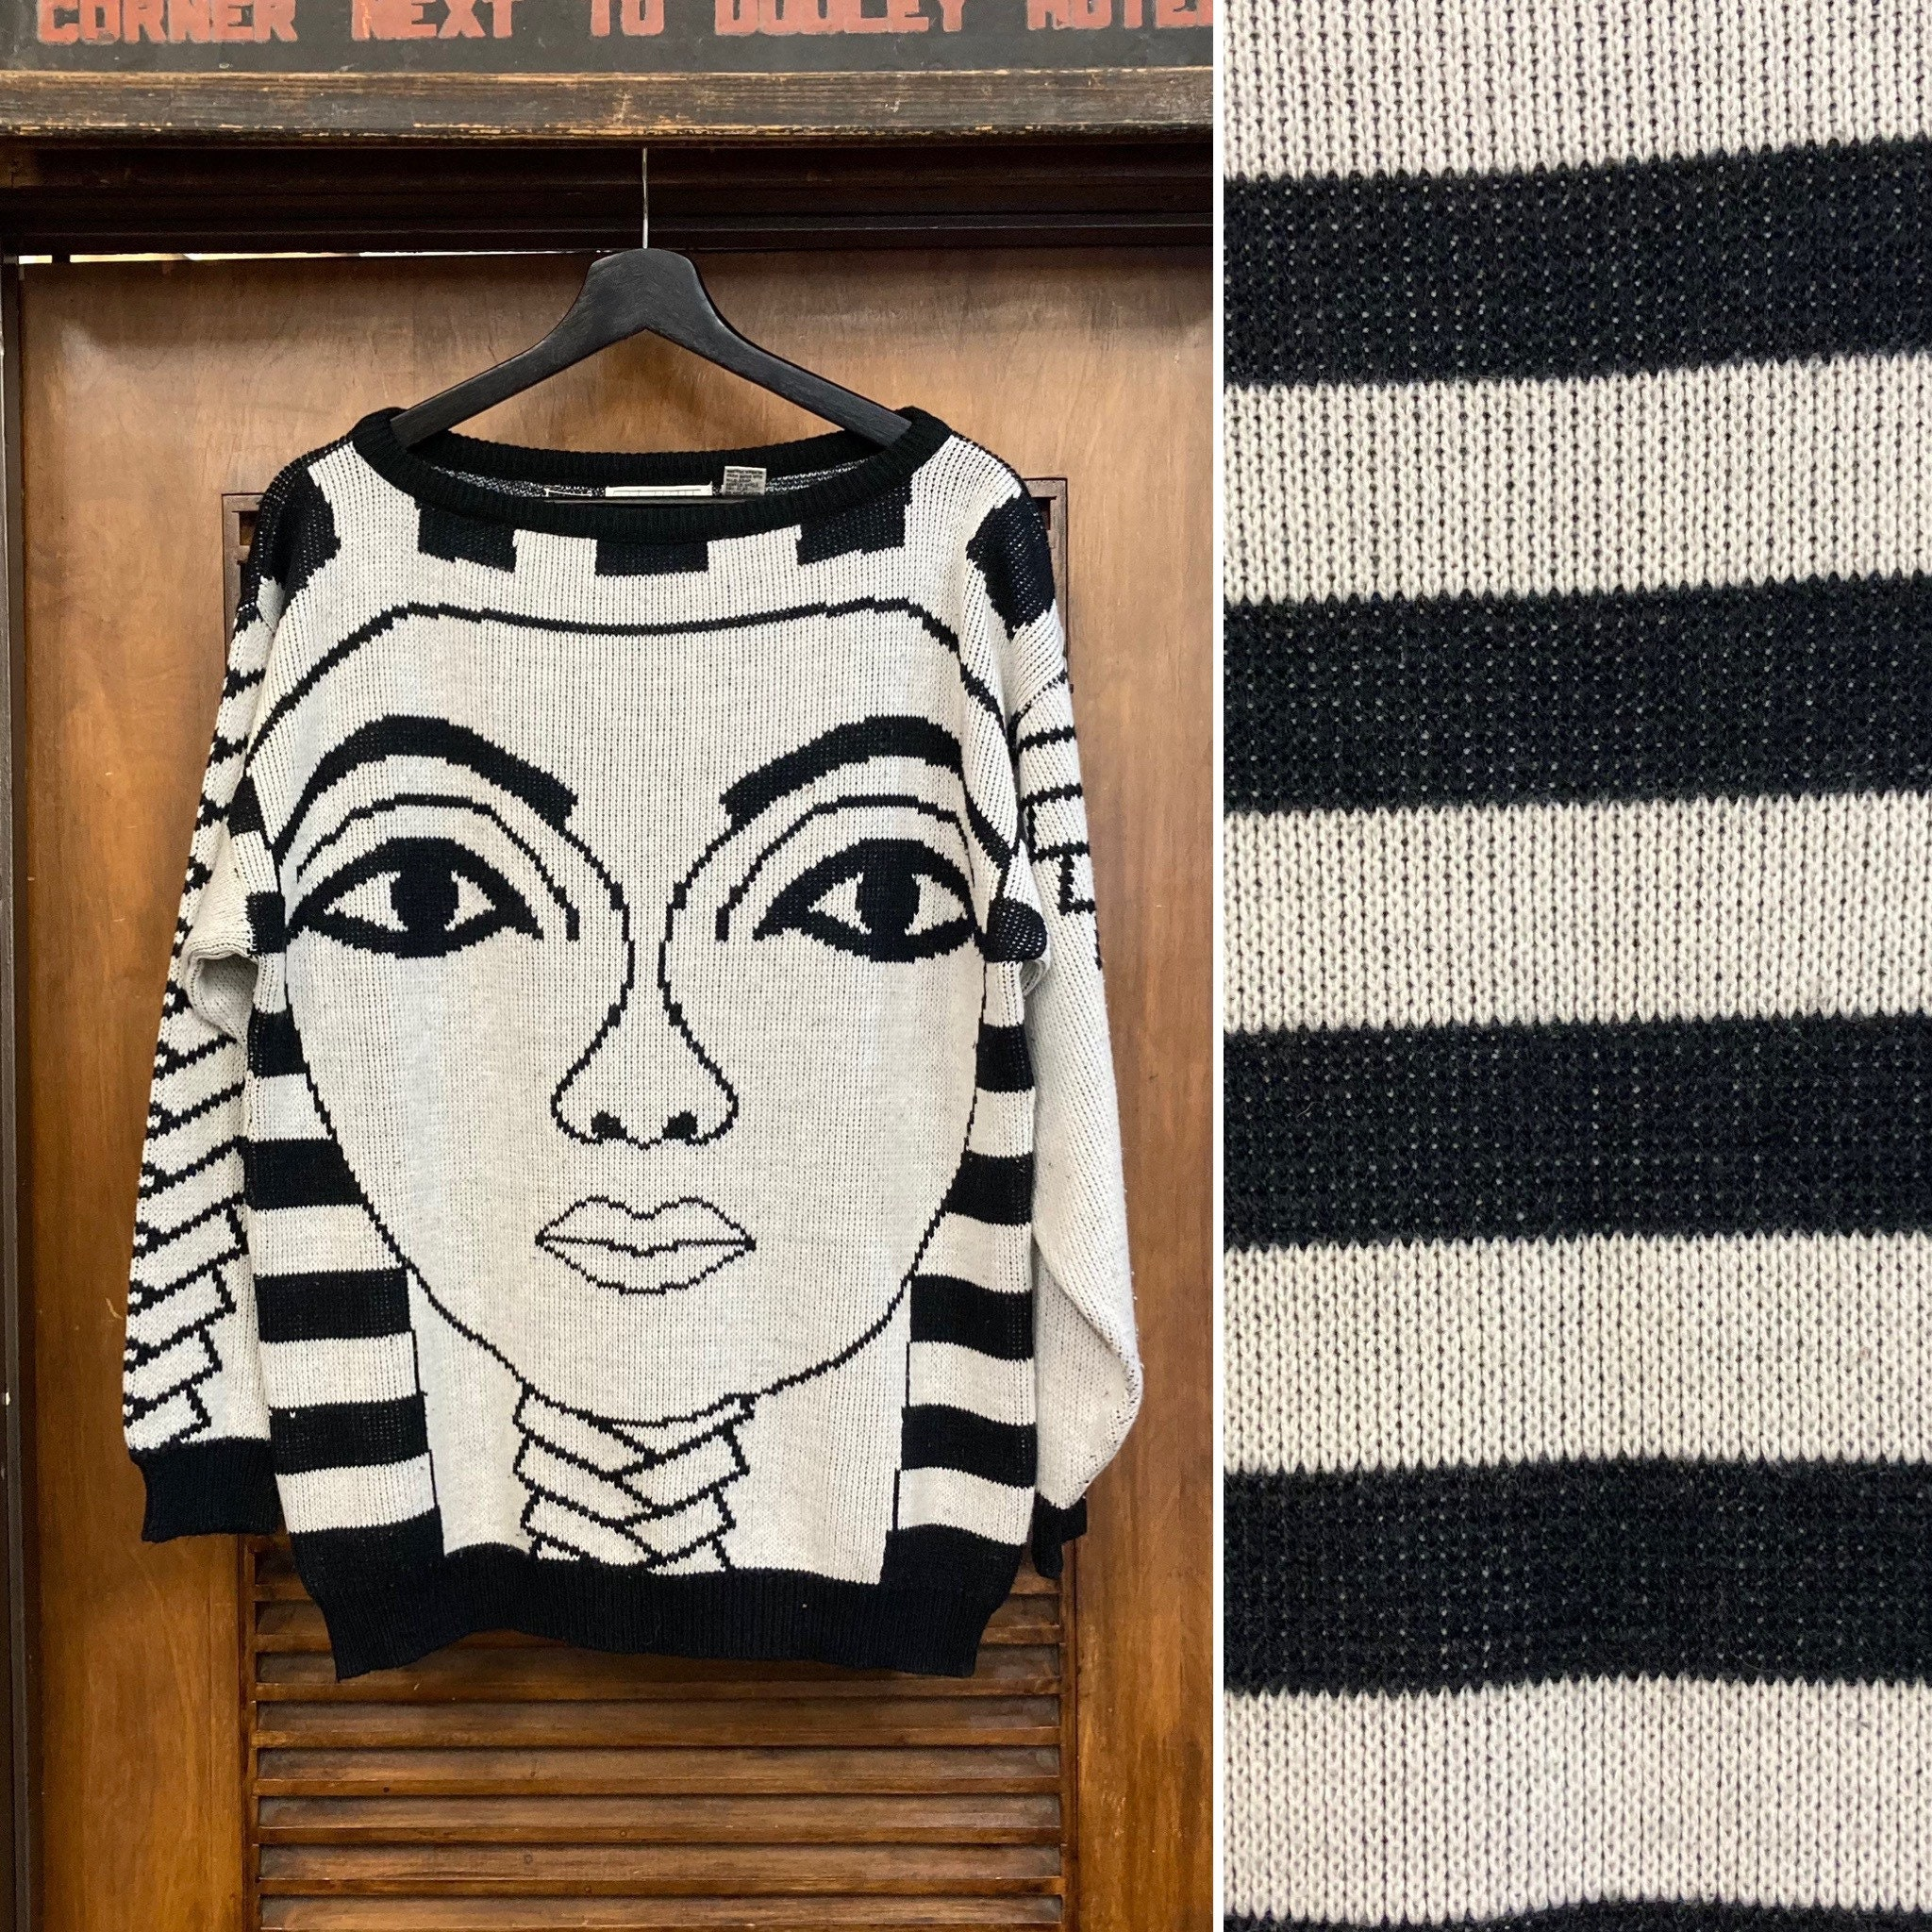 80s Sweatshirts, Sweaters, Vests | Women Vintage 1980s King Tut New Wave Print Knit Sweater, 80s Wave, Ancient Egyptian, Top, Clothing $350.00 AT vintagedancer.com